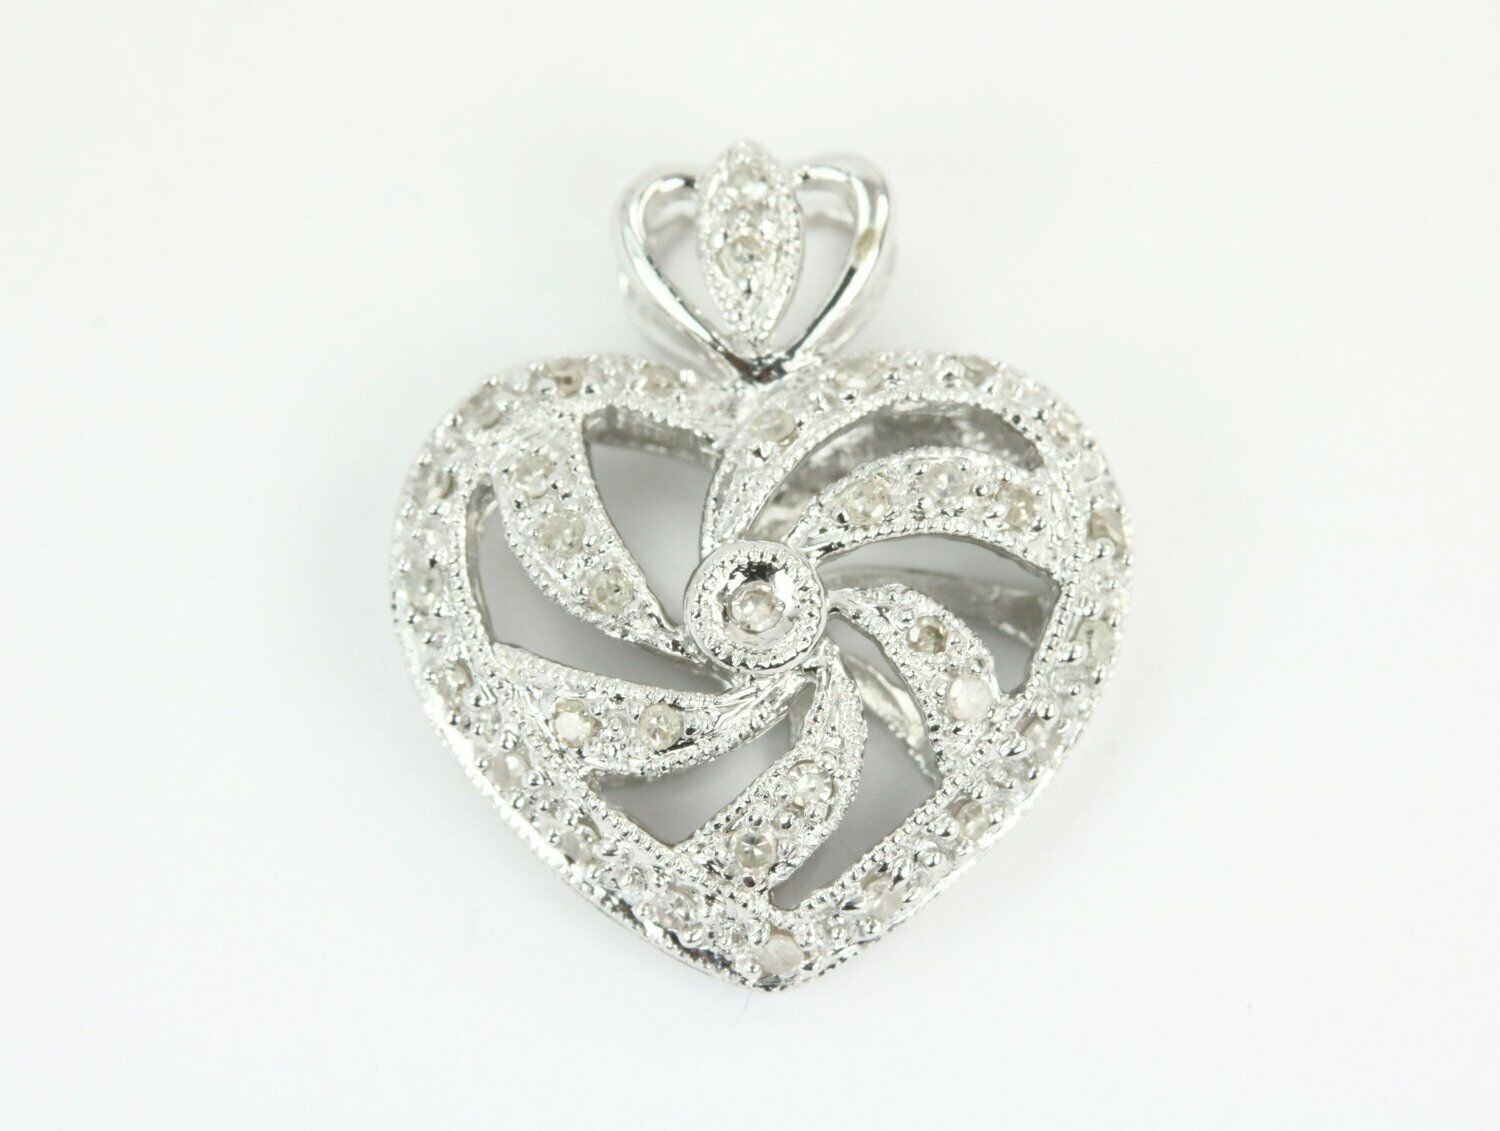 d656f199dd936 Bale Pave Heart Wide 19.5x17mm gold White 14K In Pendant Heart ...